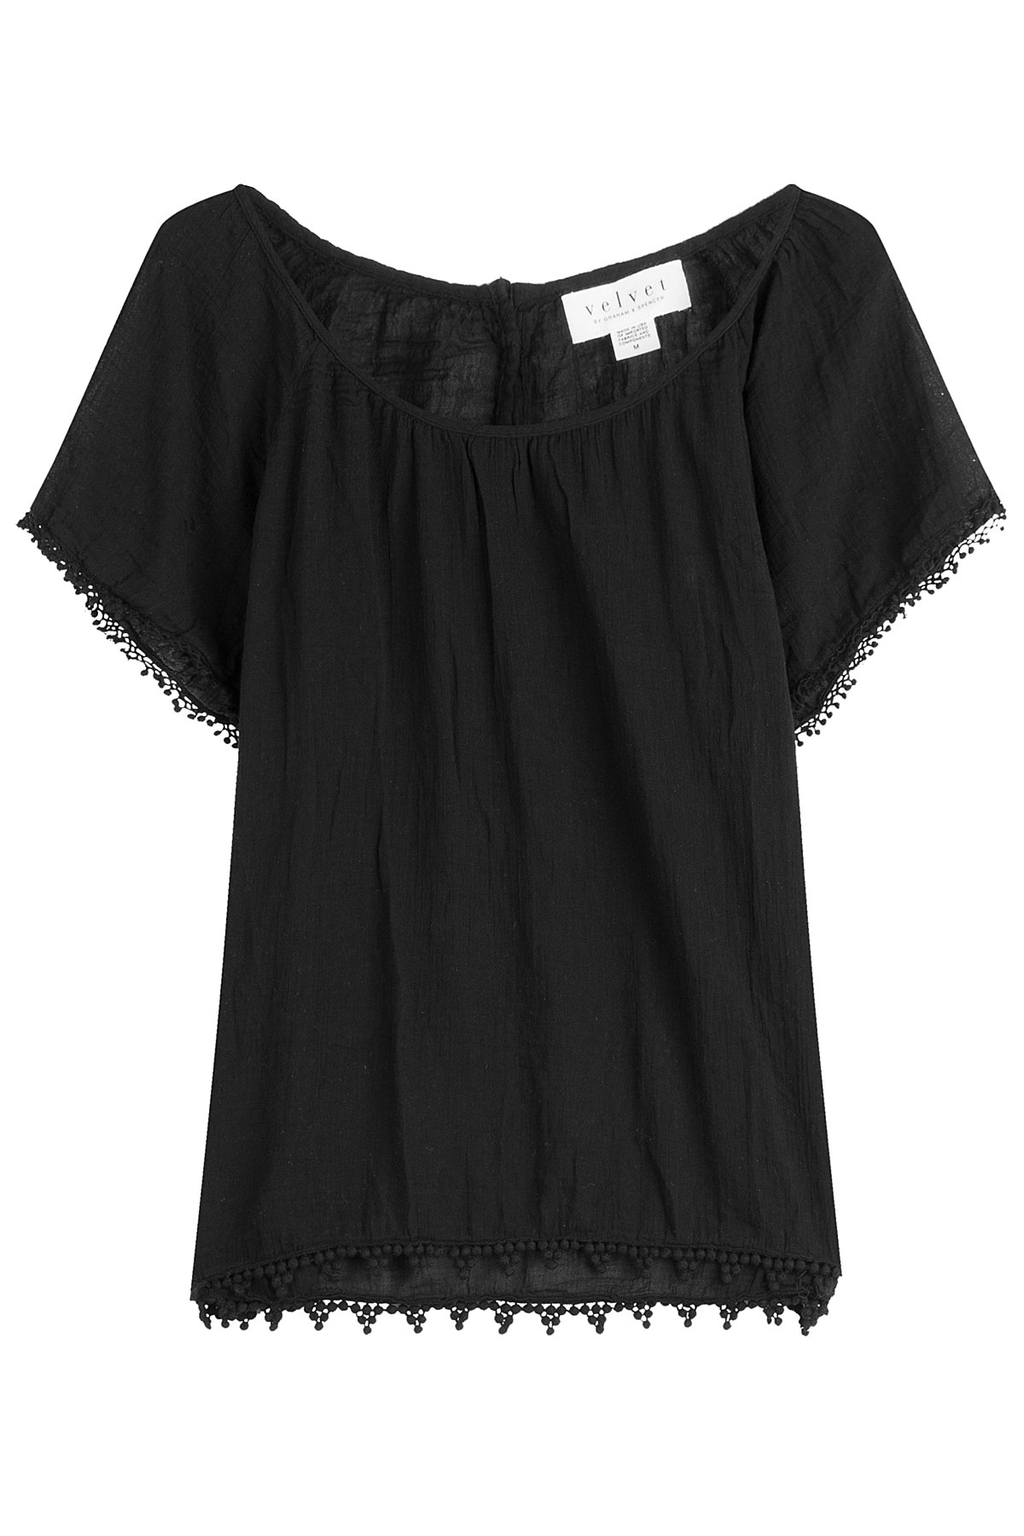 Cotton Top With Embroidered Trim Black - neckline: round neck; pattern: plain; predominant colour: black; occasions: casual; length: standard; style: top; fibres: cotton - 100%; fit: body skimming; sleeve length: short sleeve; sleeve style: standard; texture group: cotton feel fabrics; pattern type: fabric; season: s/s 2016; wardrobe: basic